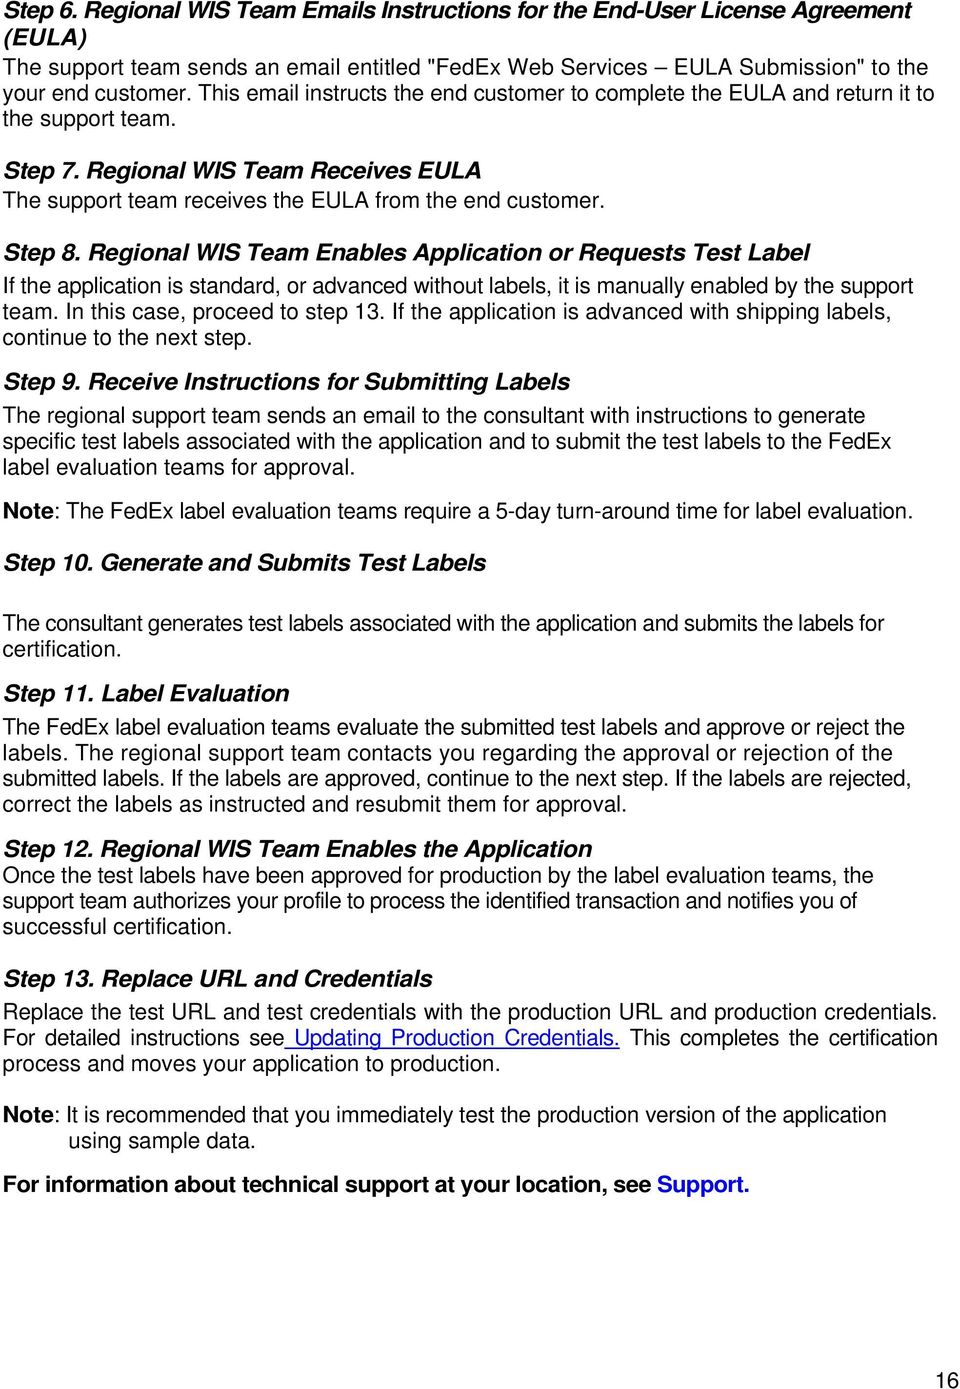 Regional WIS Team Enables Application or Requests Test Label If the application is standard, or advanced without labels, it is manually enabled by the support team. In this case, proceed to step 13.